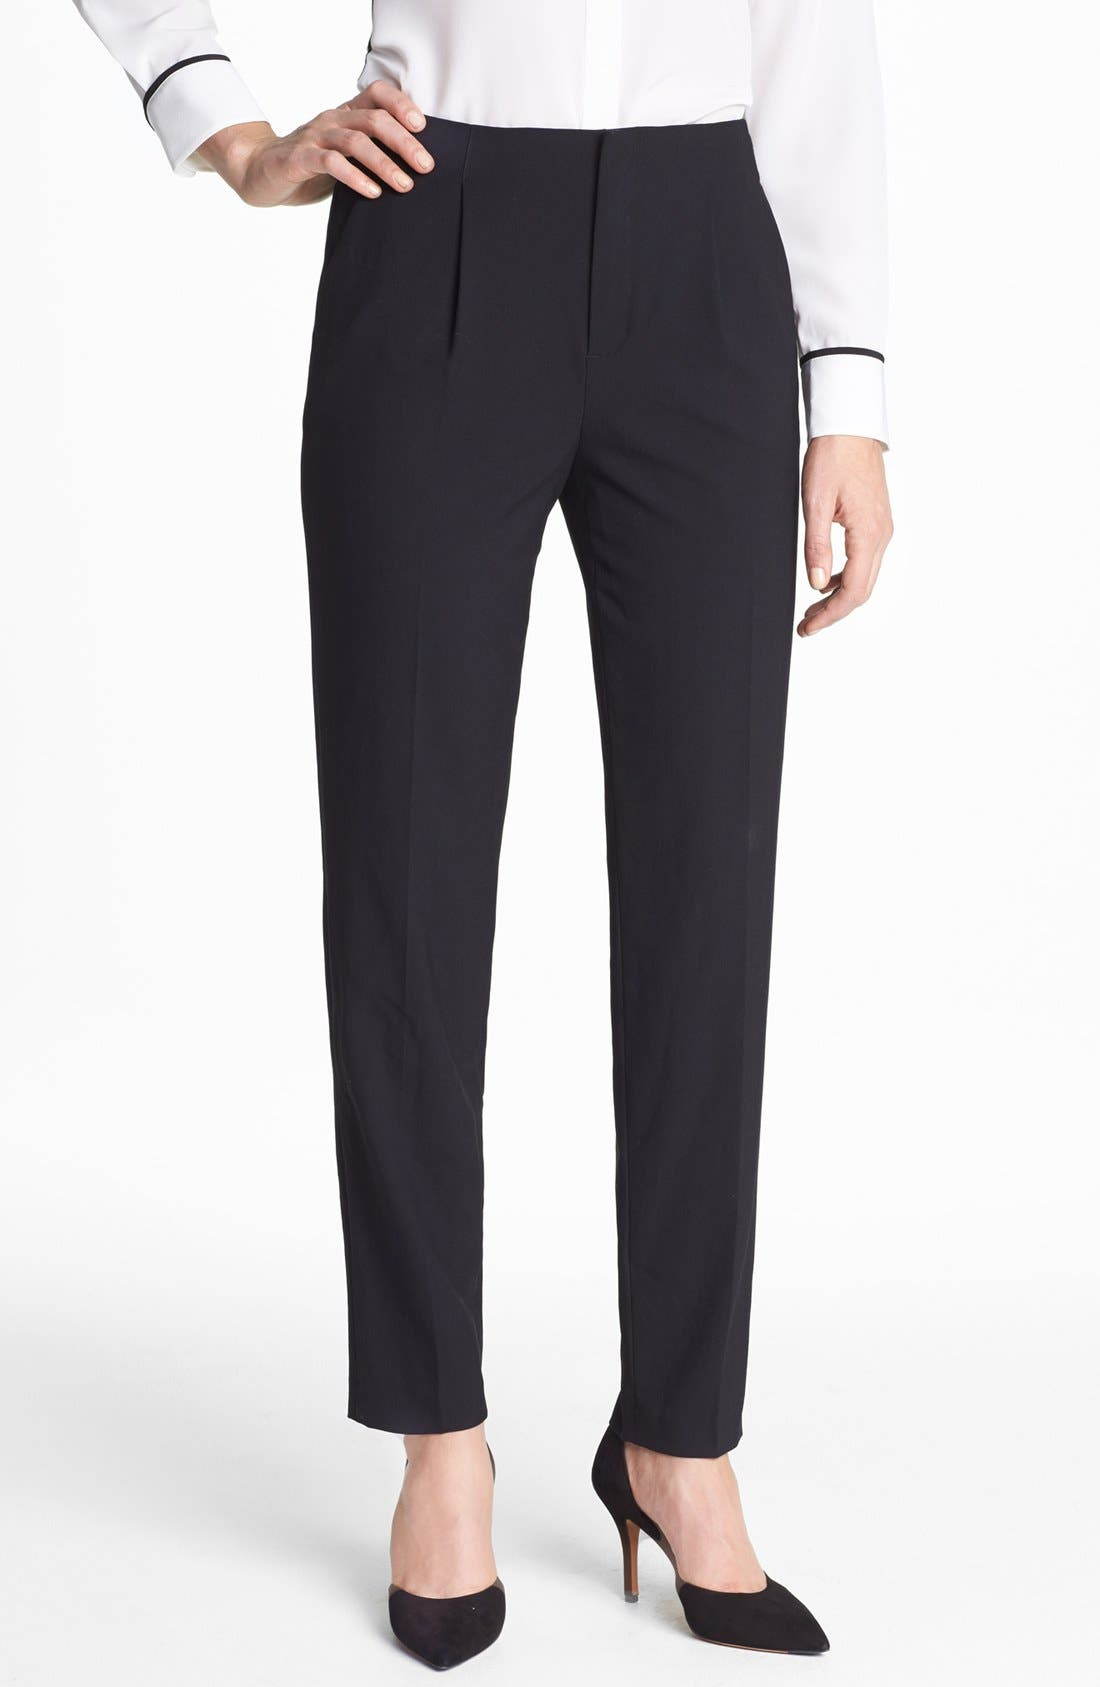 Alternate Image 1 Selected - Vince Camuto Pleated Pants (Petite)